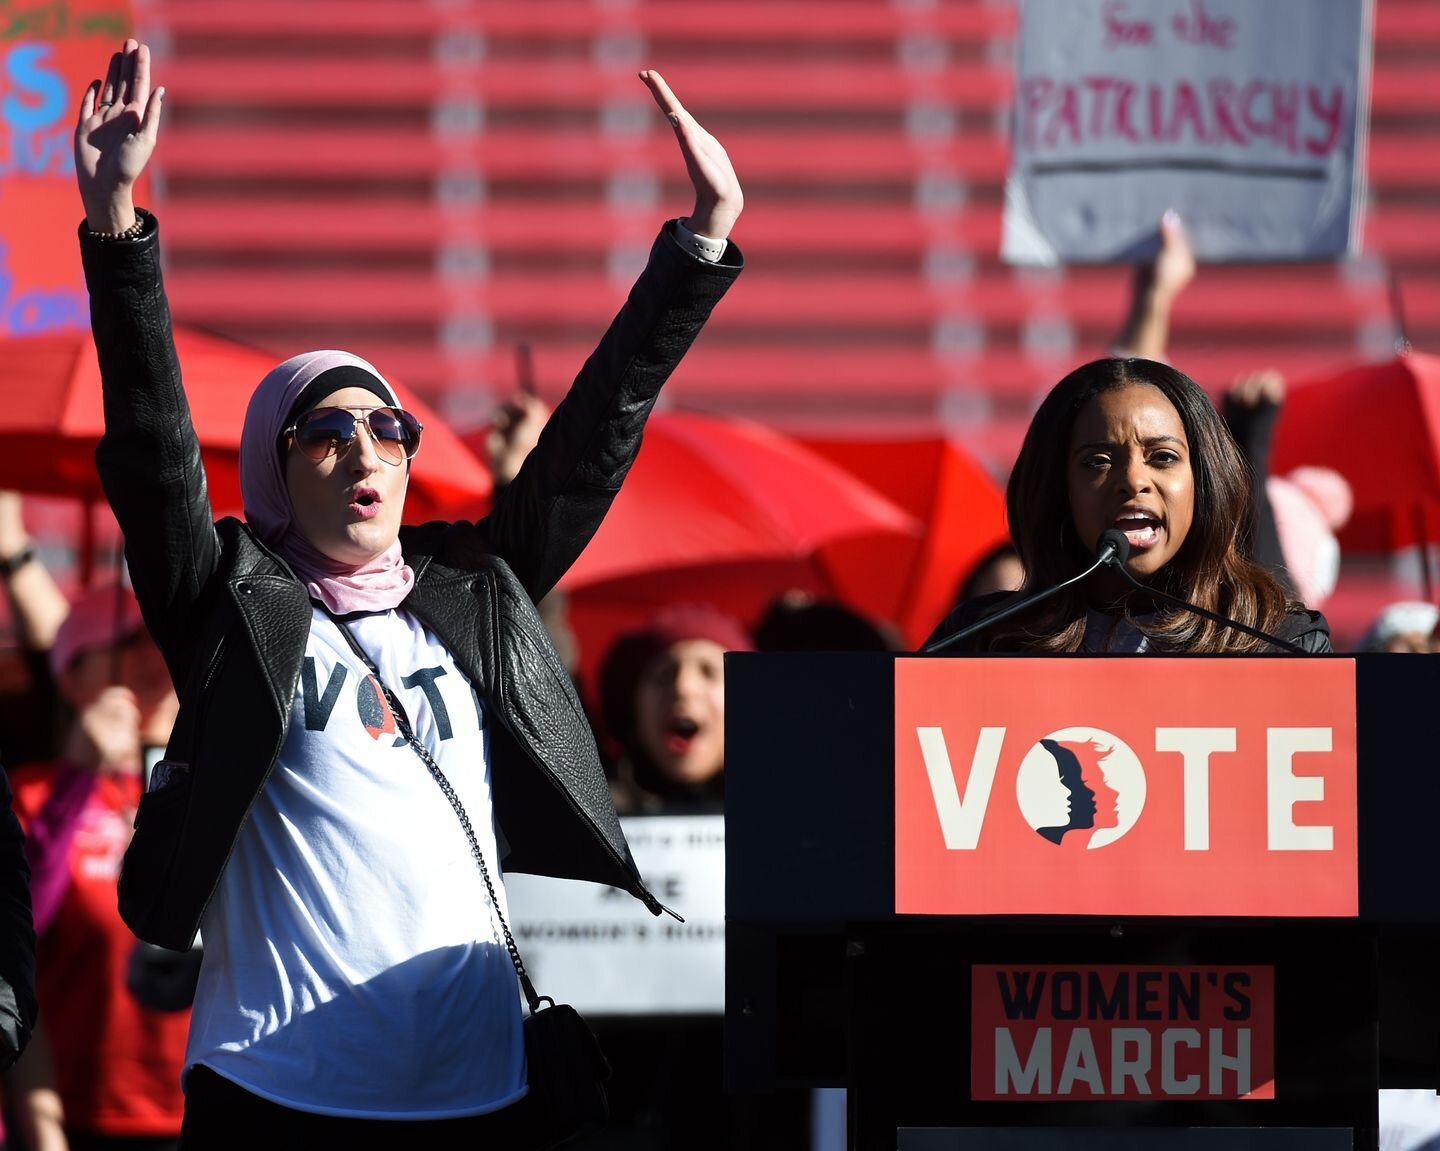 Women's March Co-Chairs Linda Sarsour and Tamika Mallory speak during the Power to the Polls voter-registration tour last year in Las Vegas. (Ethan Miller/Getty Images)